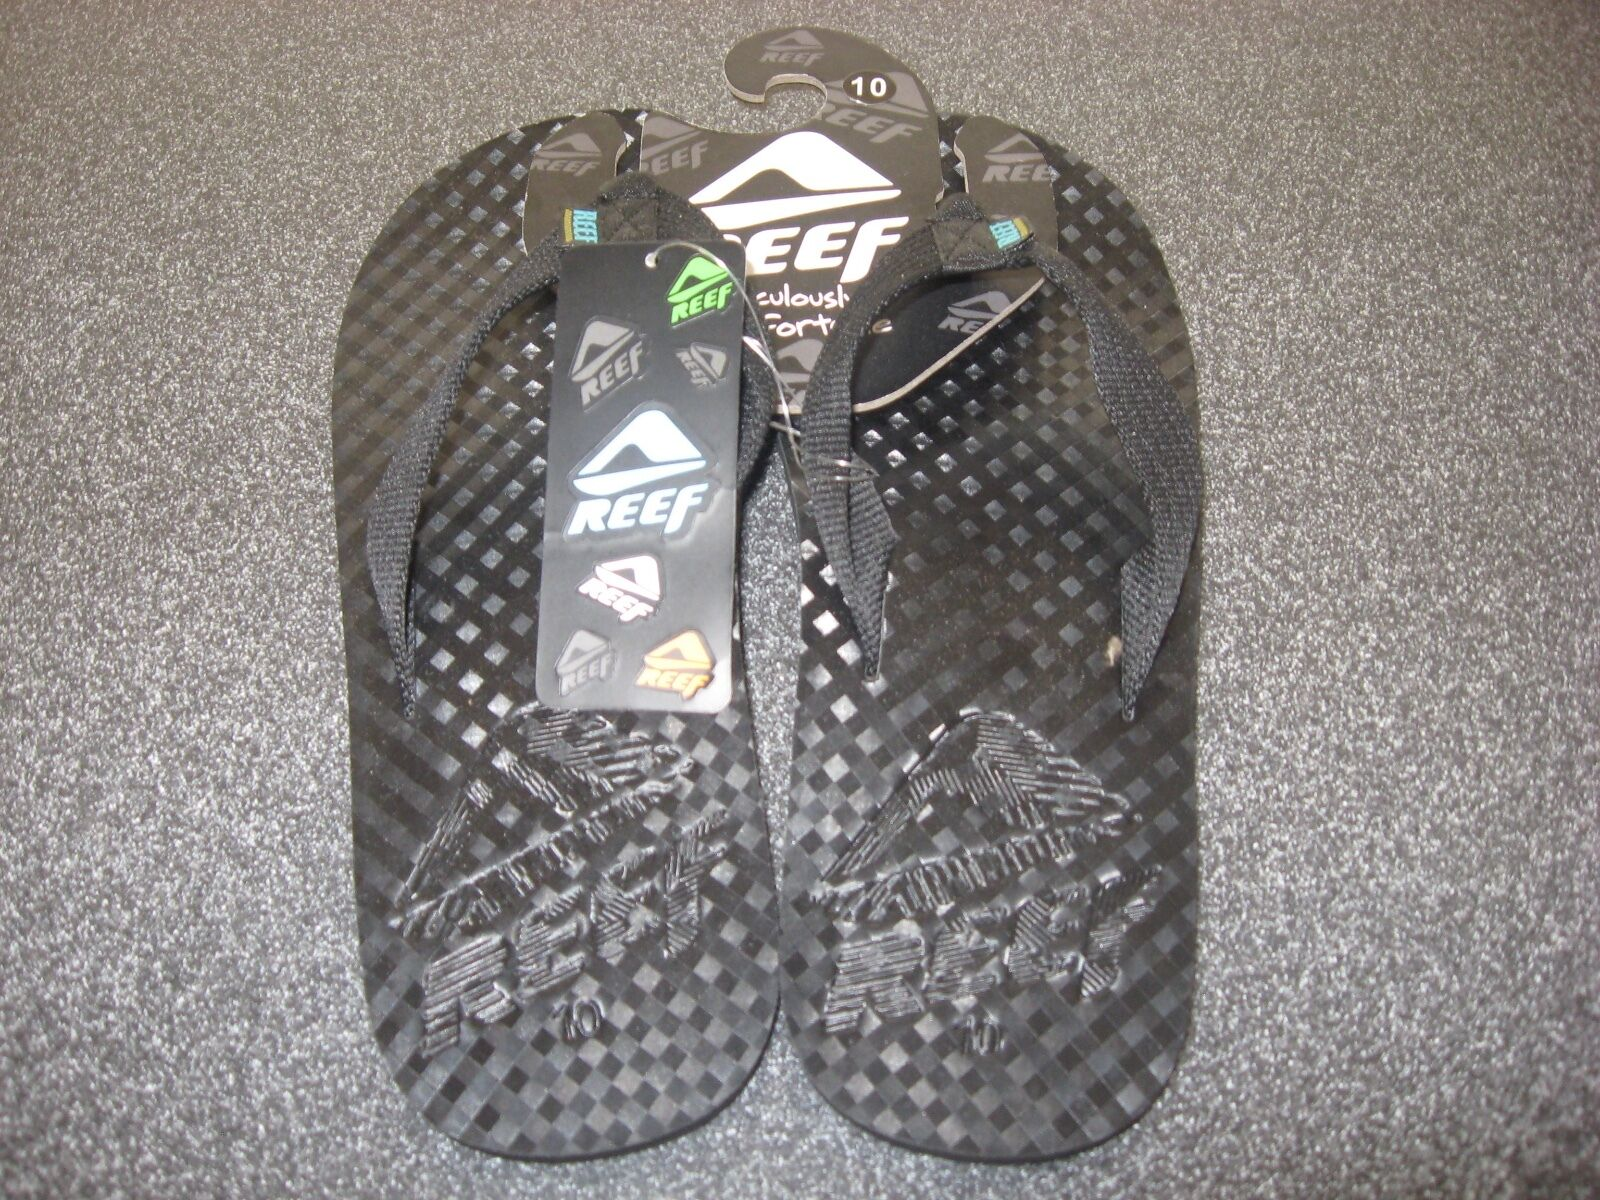 eb44e599b9d6 New Mens Reef Black Flip Flop Sandals Size 10 Nordstrom s Nordstrom s  Nordstrom s BRAND NEW WITH TAGS 478290